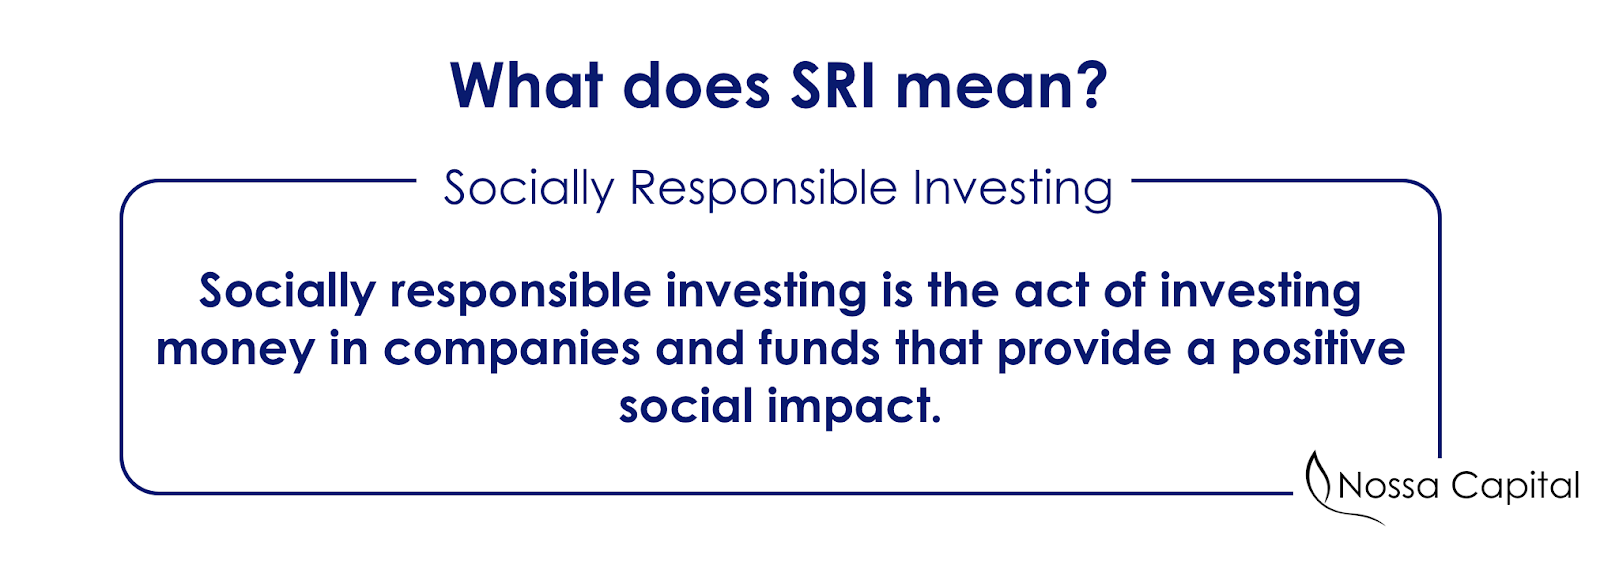 What does SRI mean, socially responsible investment